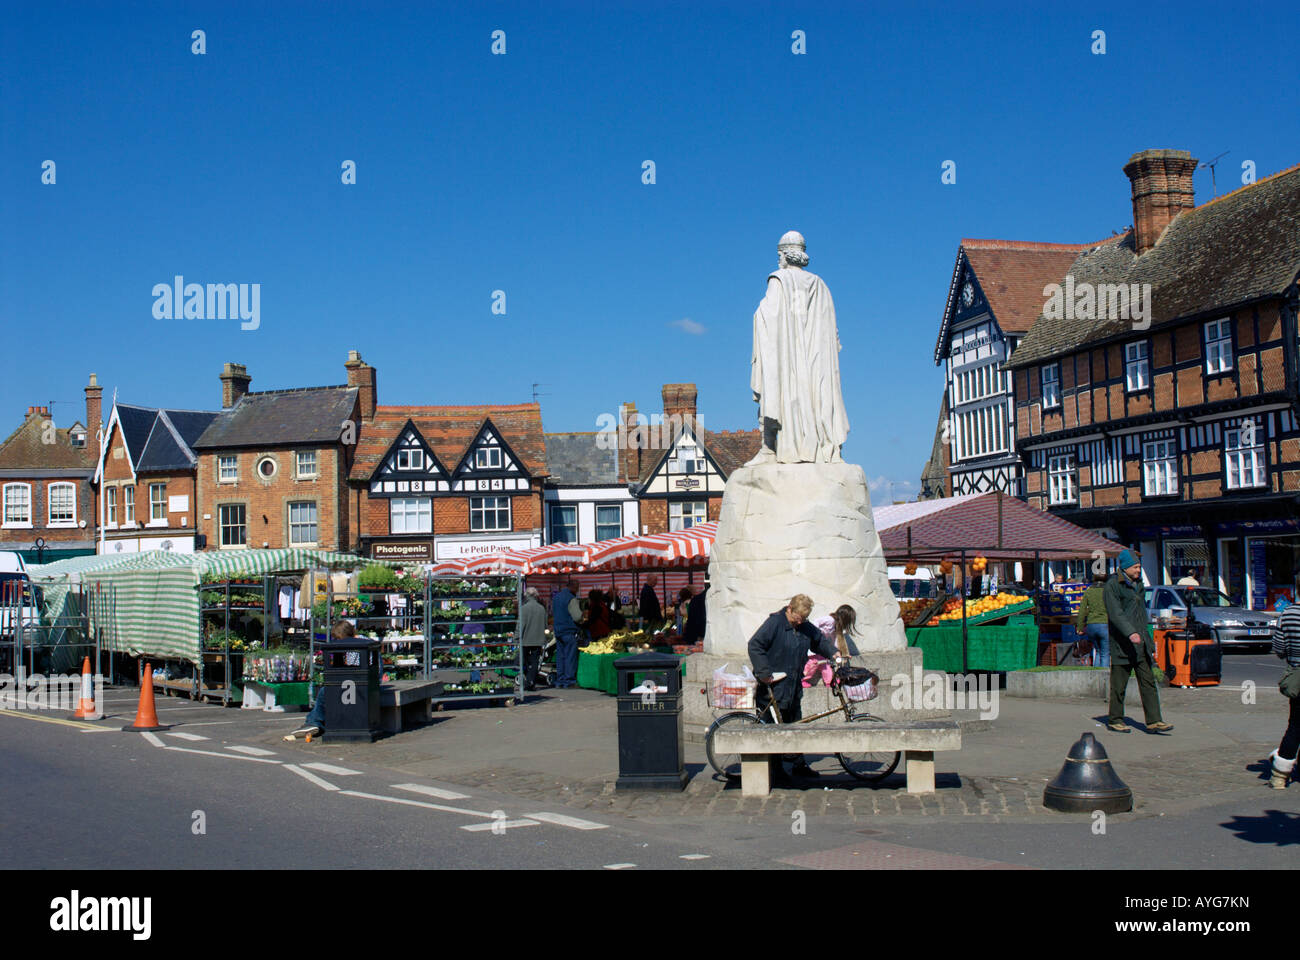 Market Day in Wantage, Oxfordshire, England - Stock Image